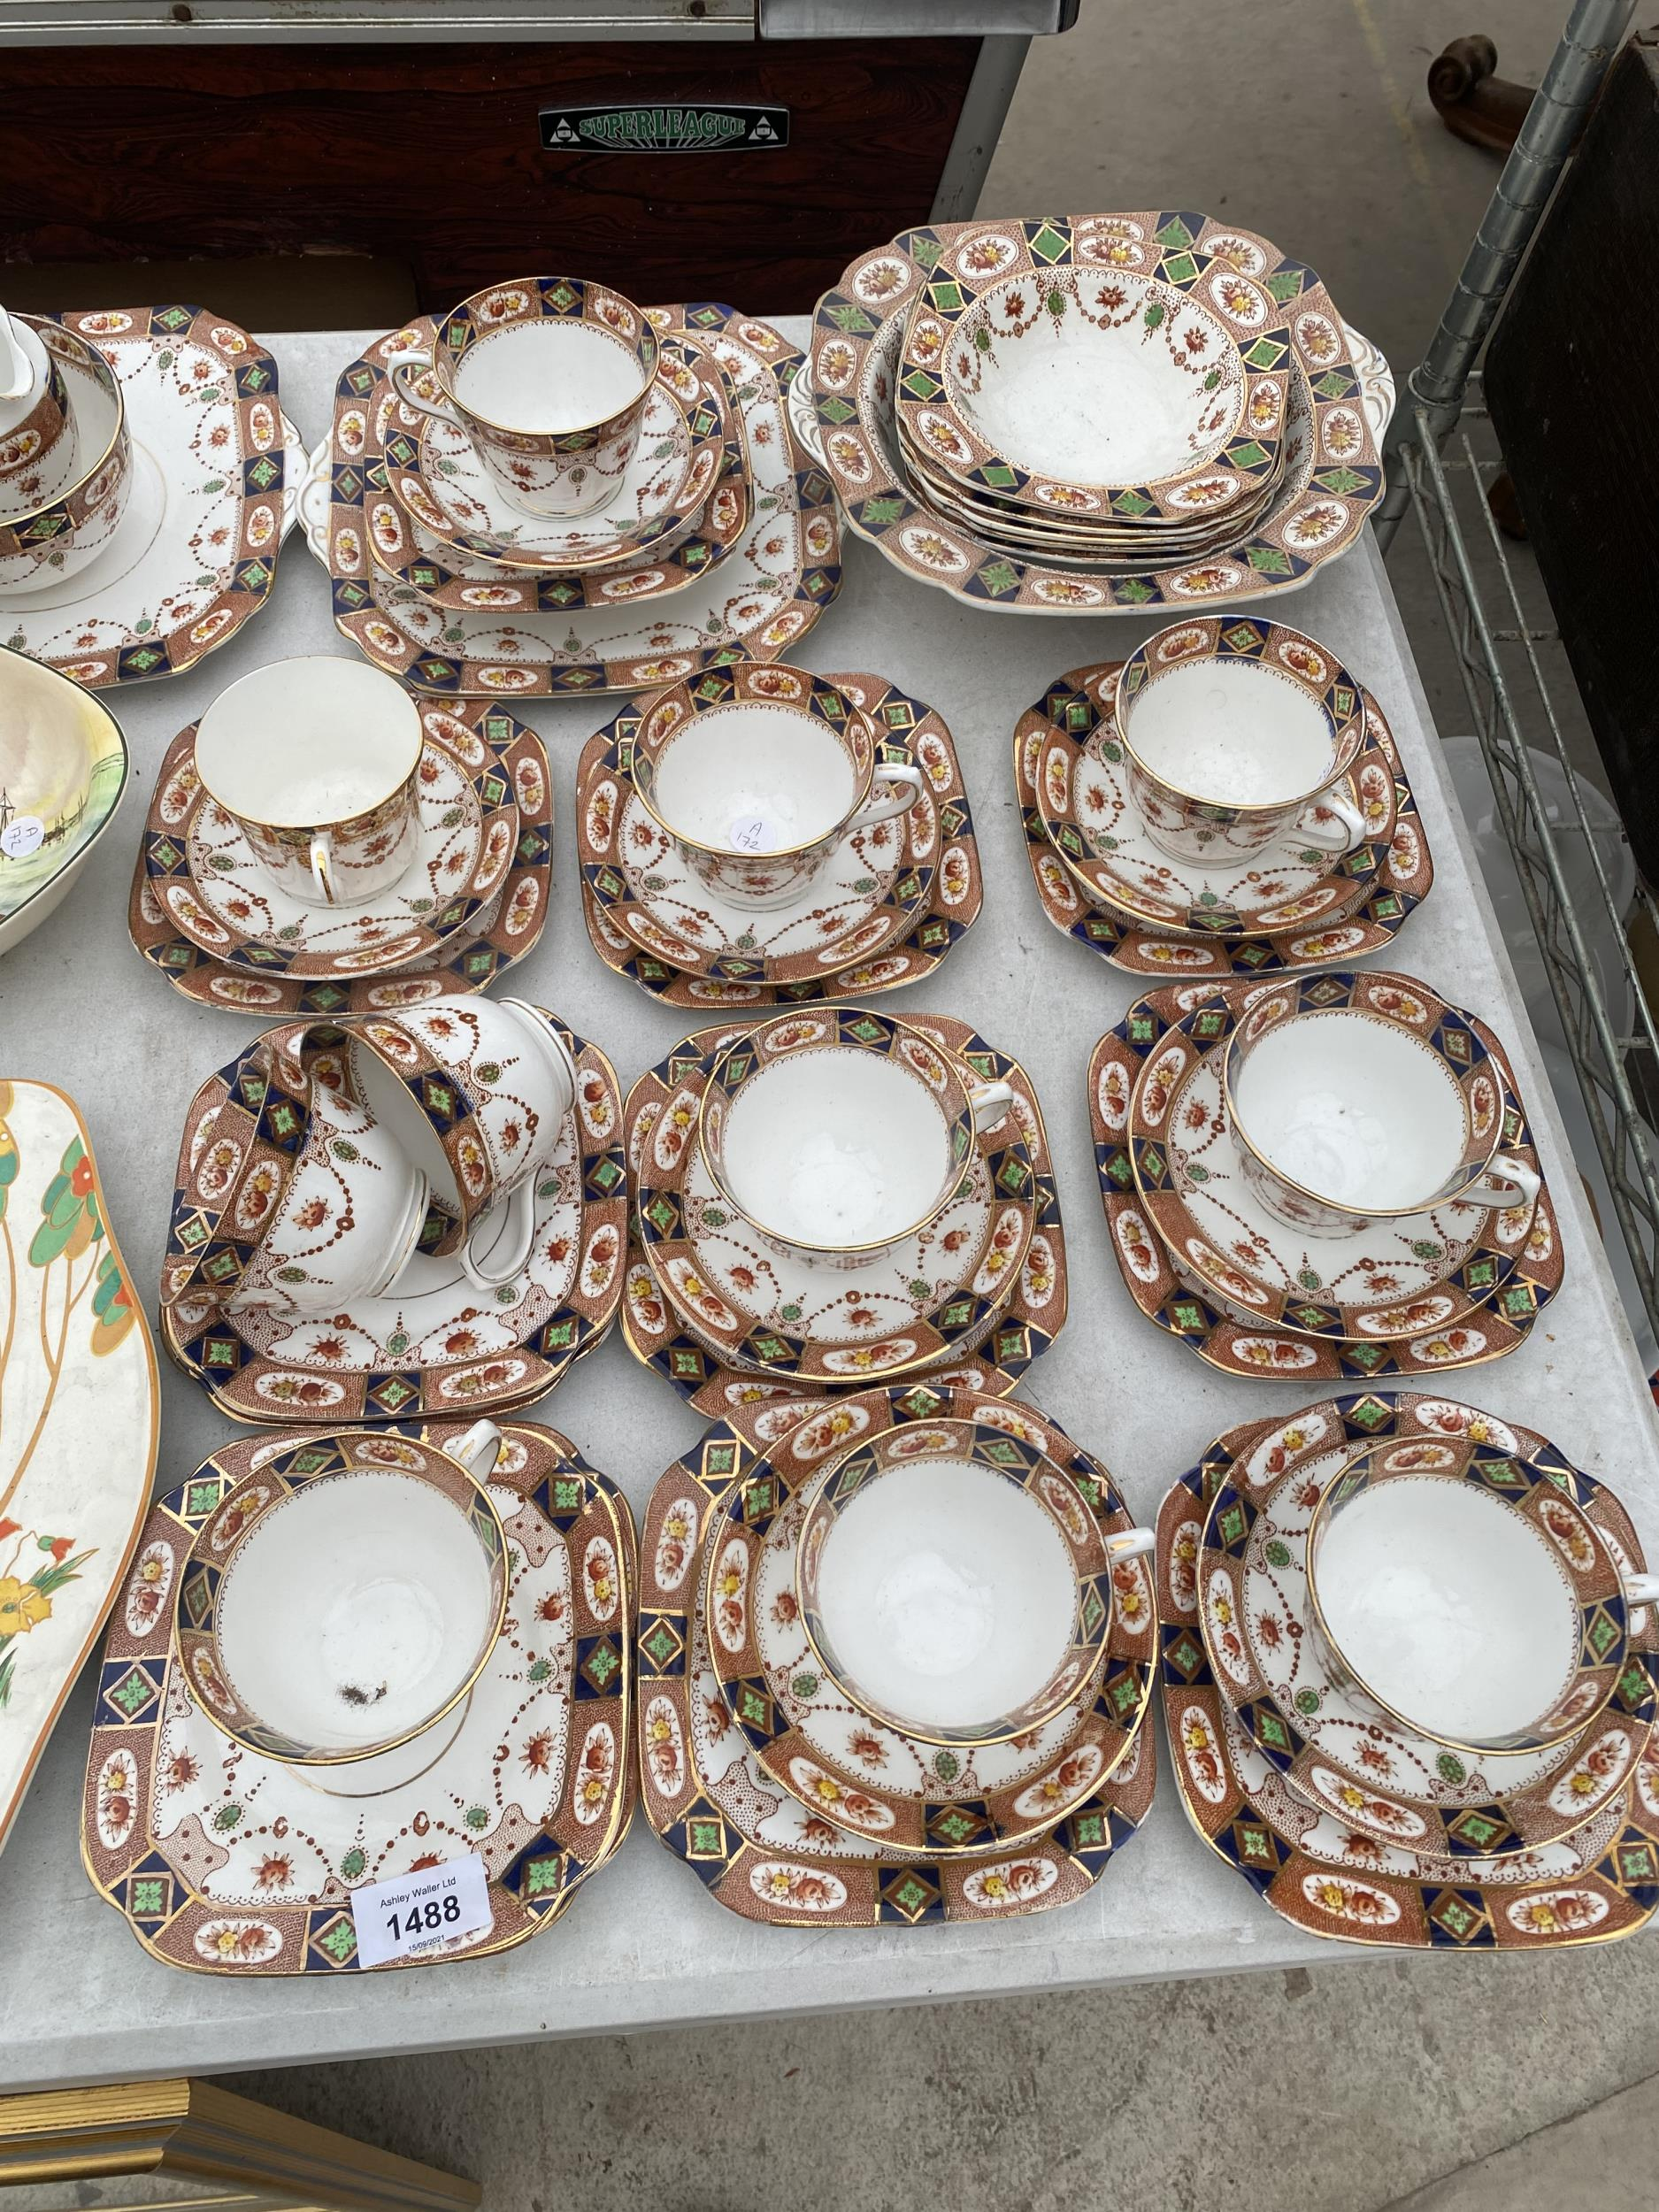 AN ASSORTMENT OF CERAMIC WARE TO INCLUDE ROYAL ALBION TRIOS ETC - Image 2 of 5